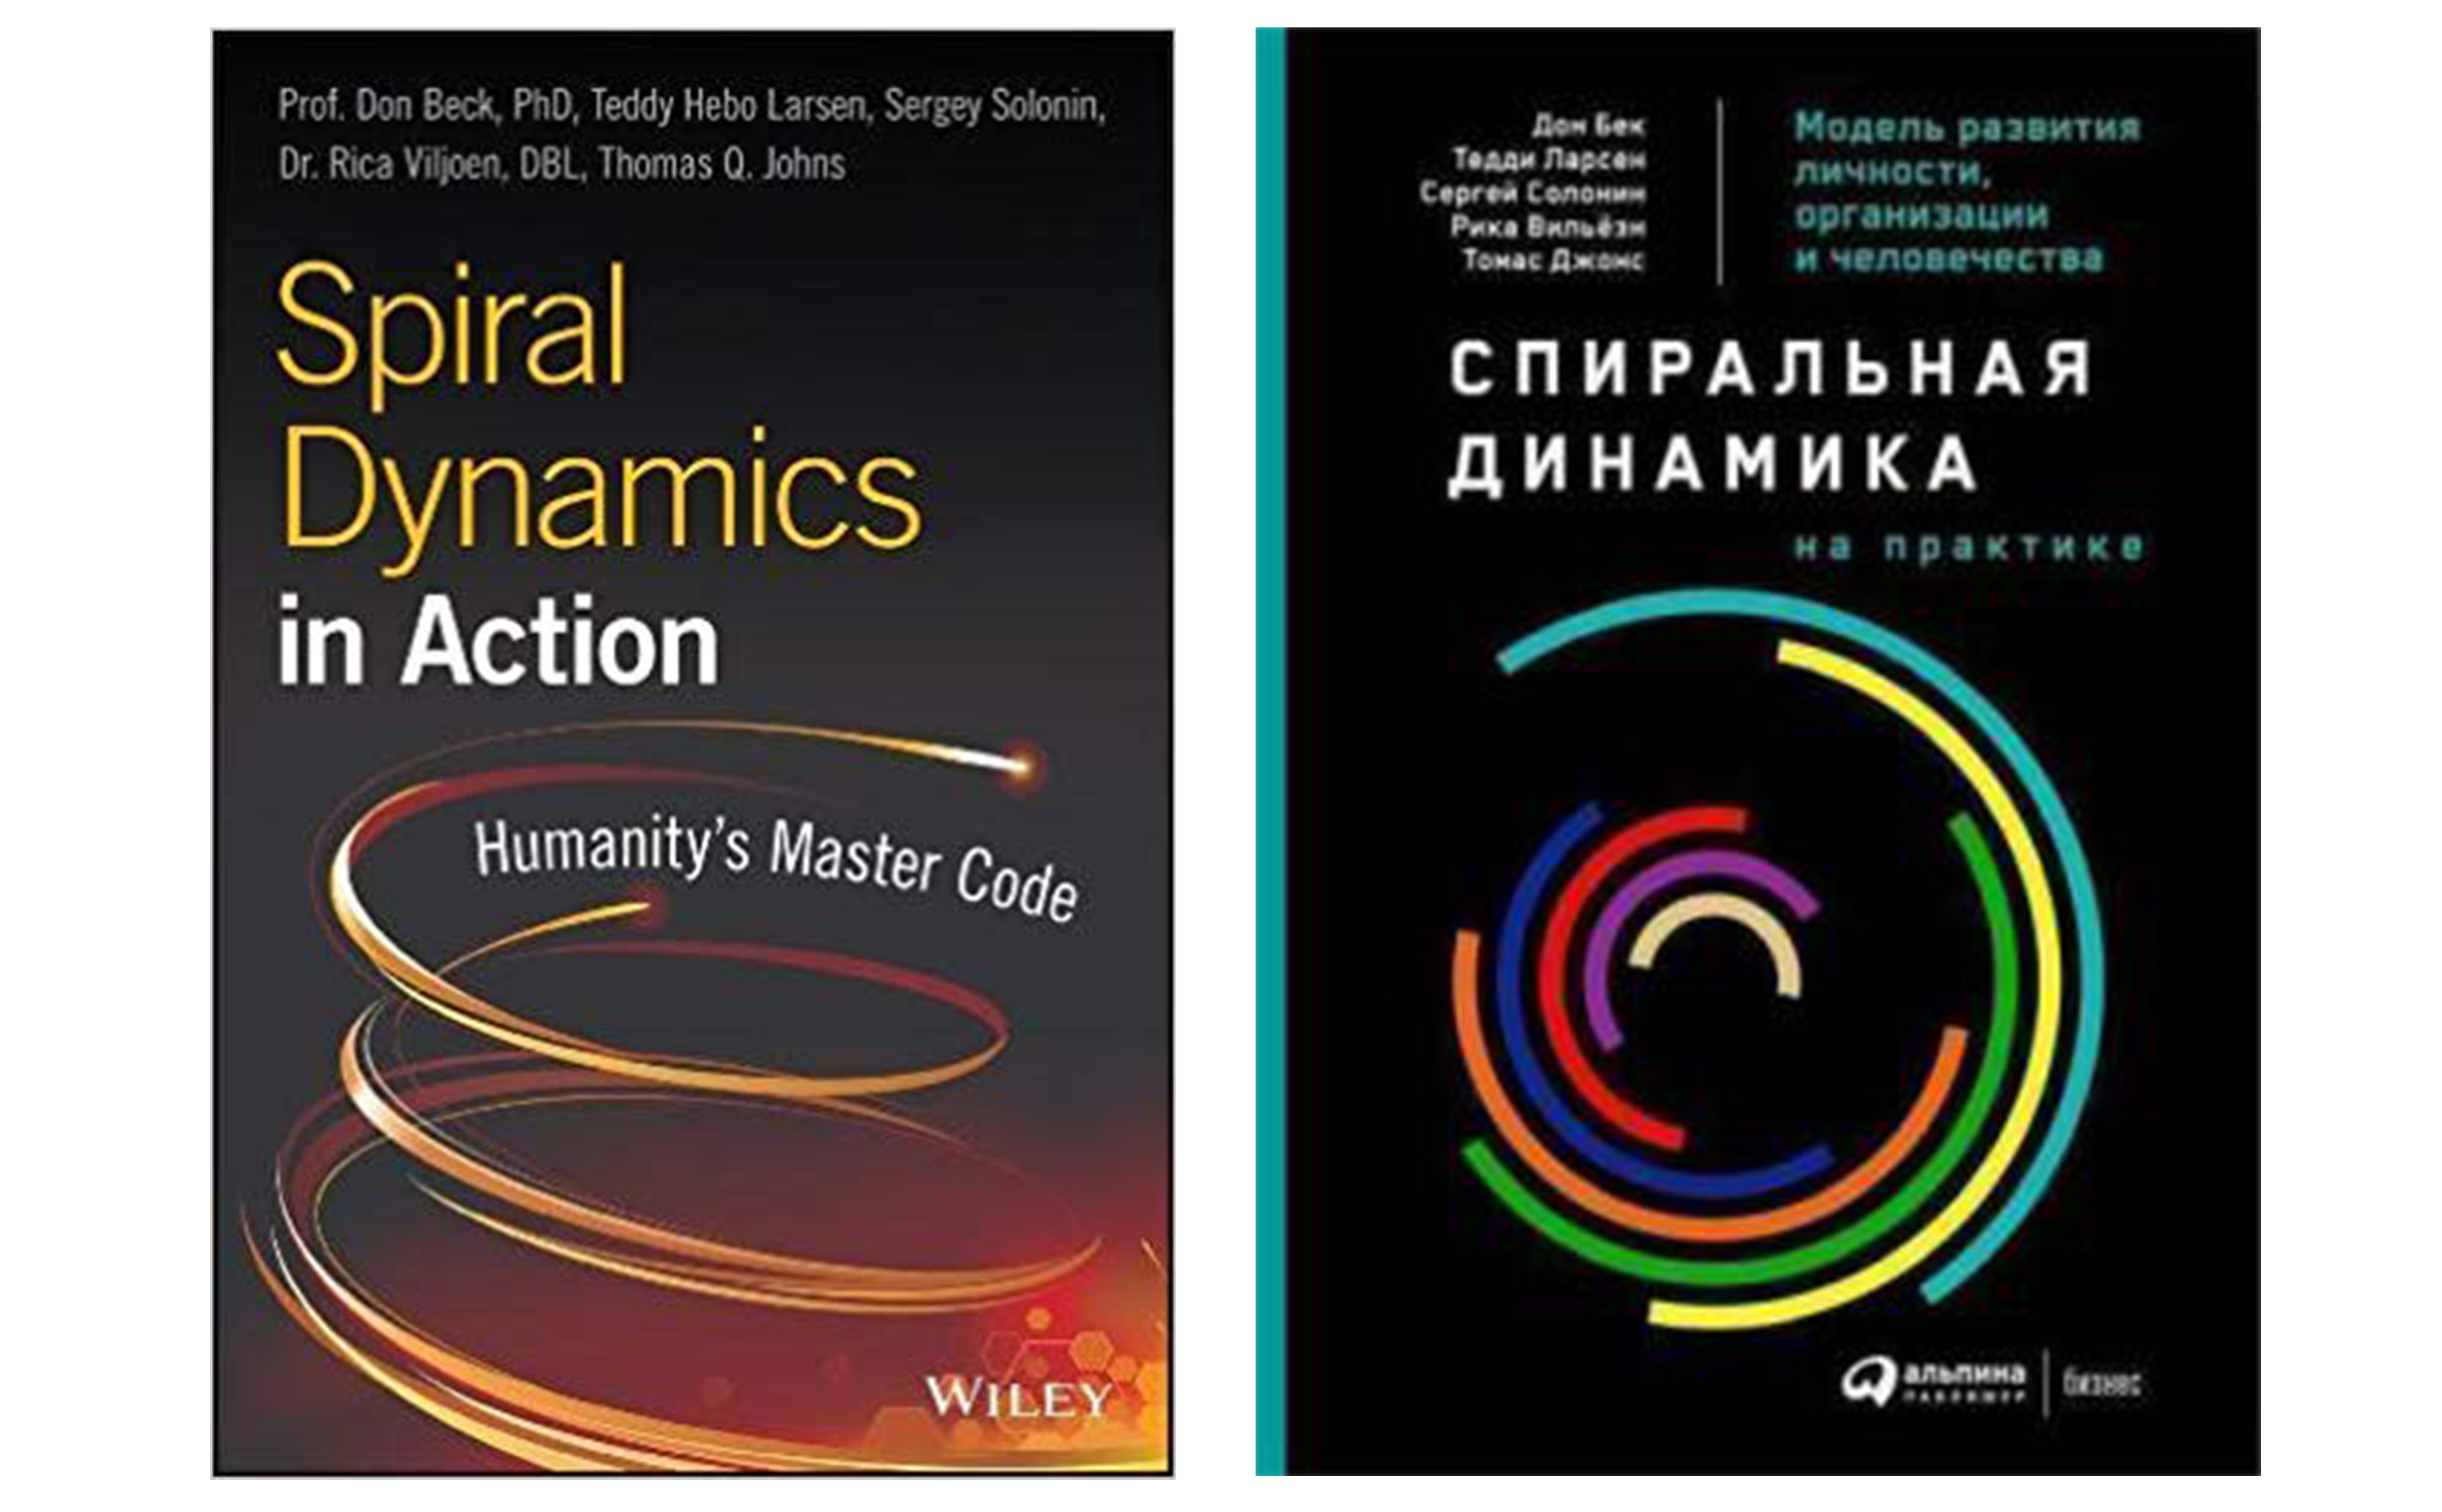 spiral dynamics in action humanitys master code